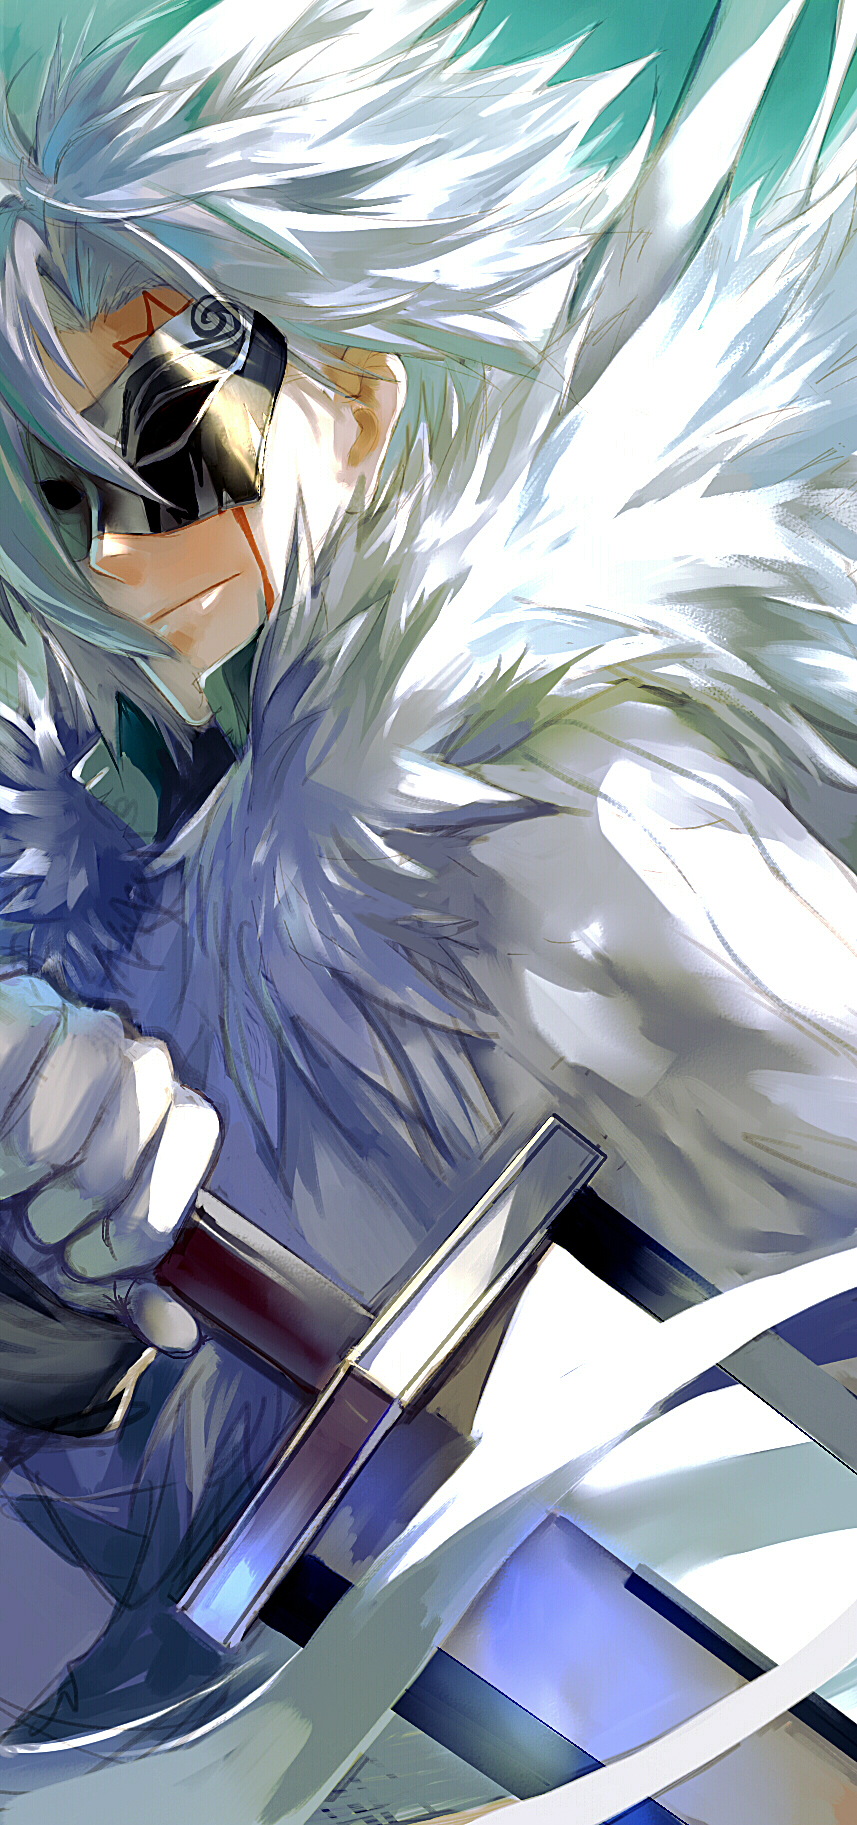 D gray man on pinterest allen walker d gray man and anime - D gray man images ...